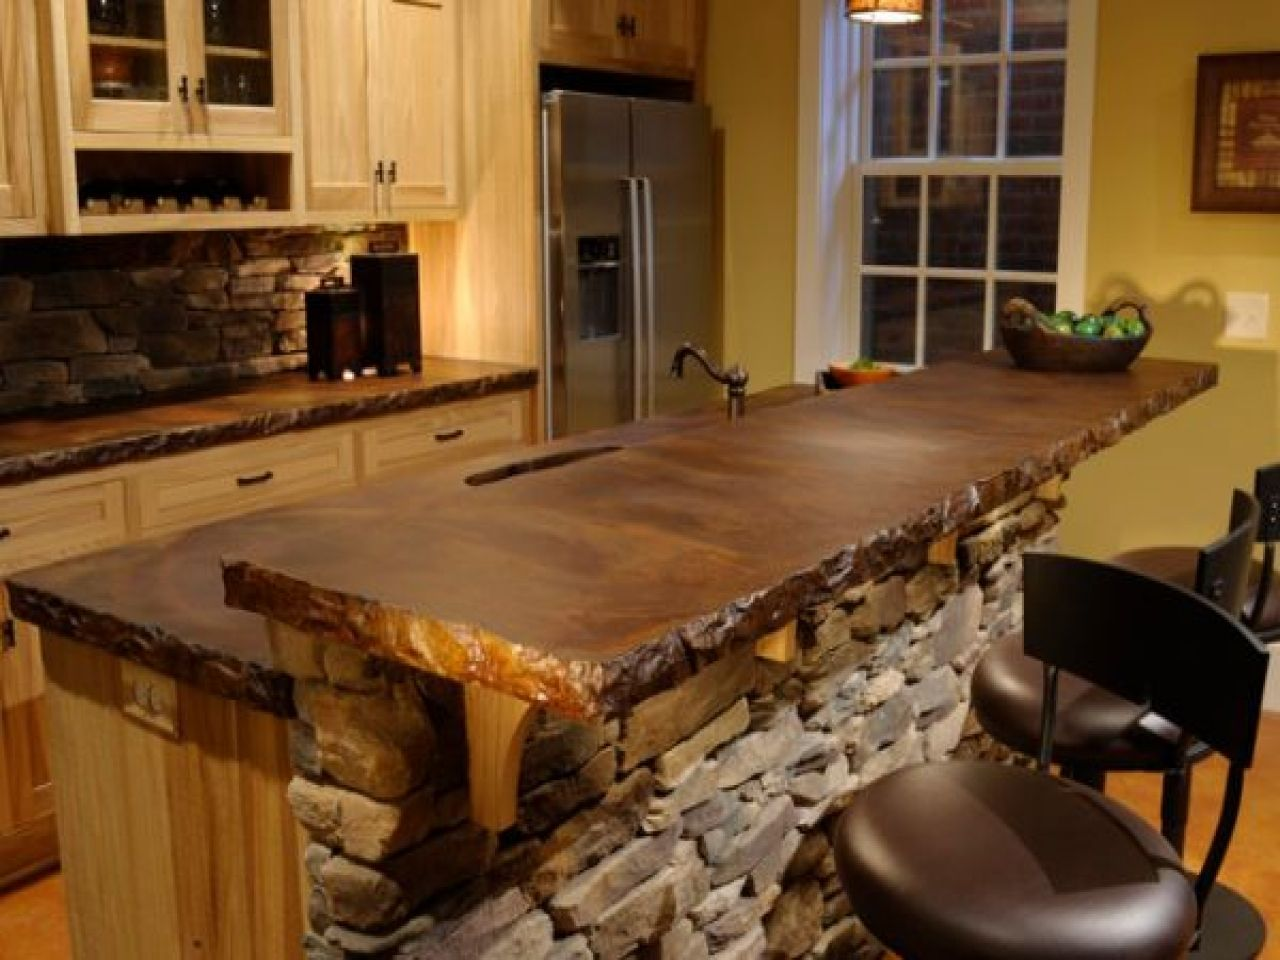 Unusual kitchen islands country backsplash ideas rustic